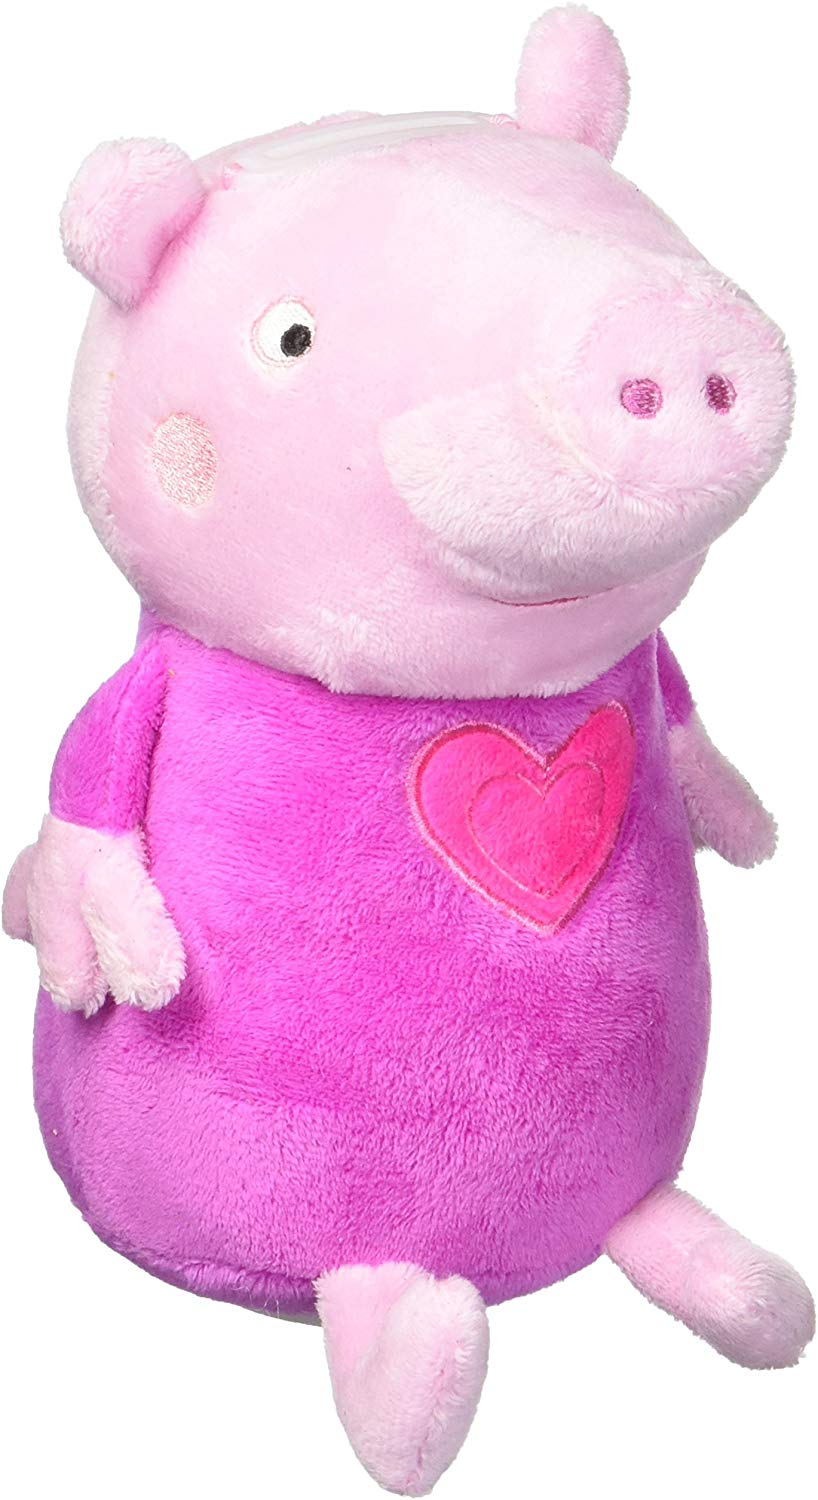 Peppa Pig Plush Coin Bank 8